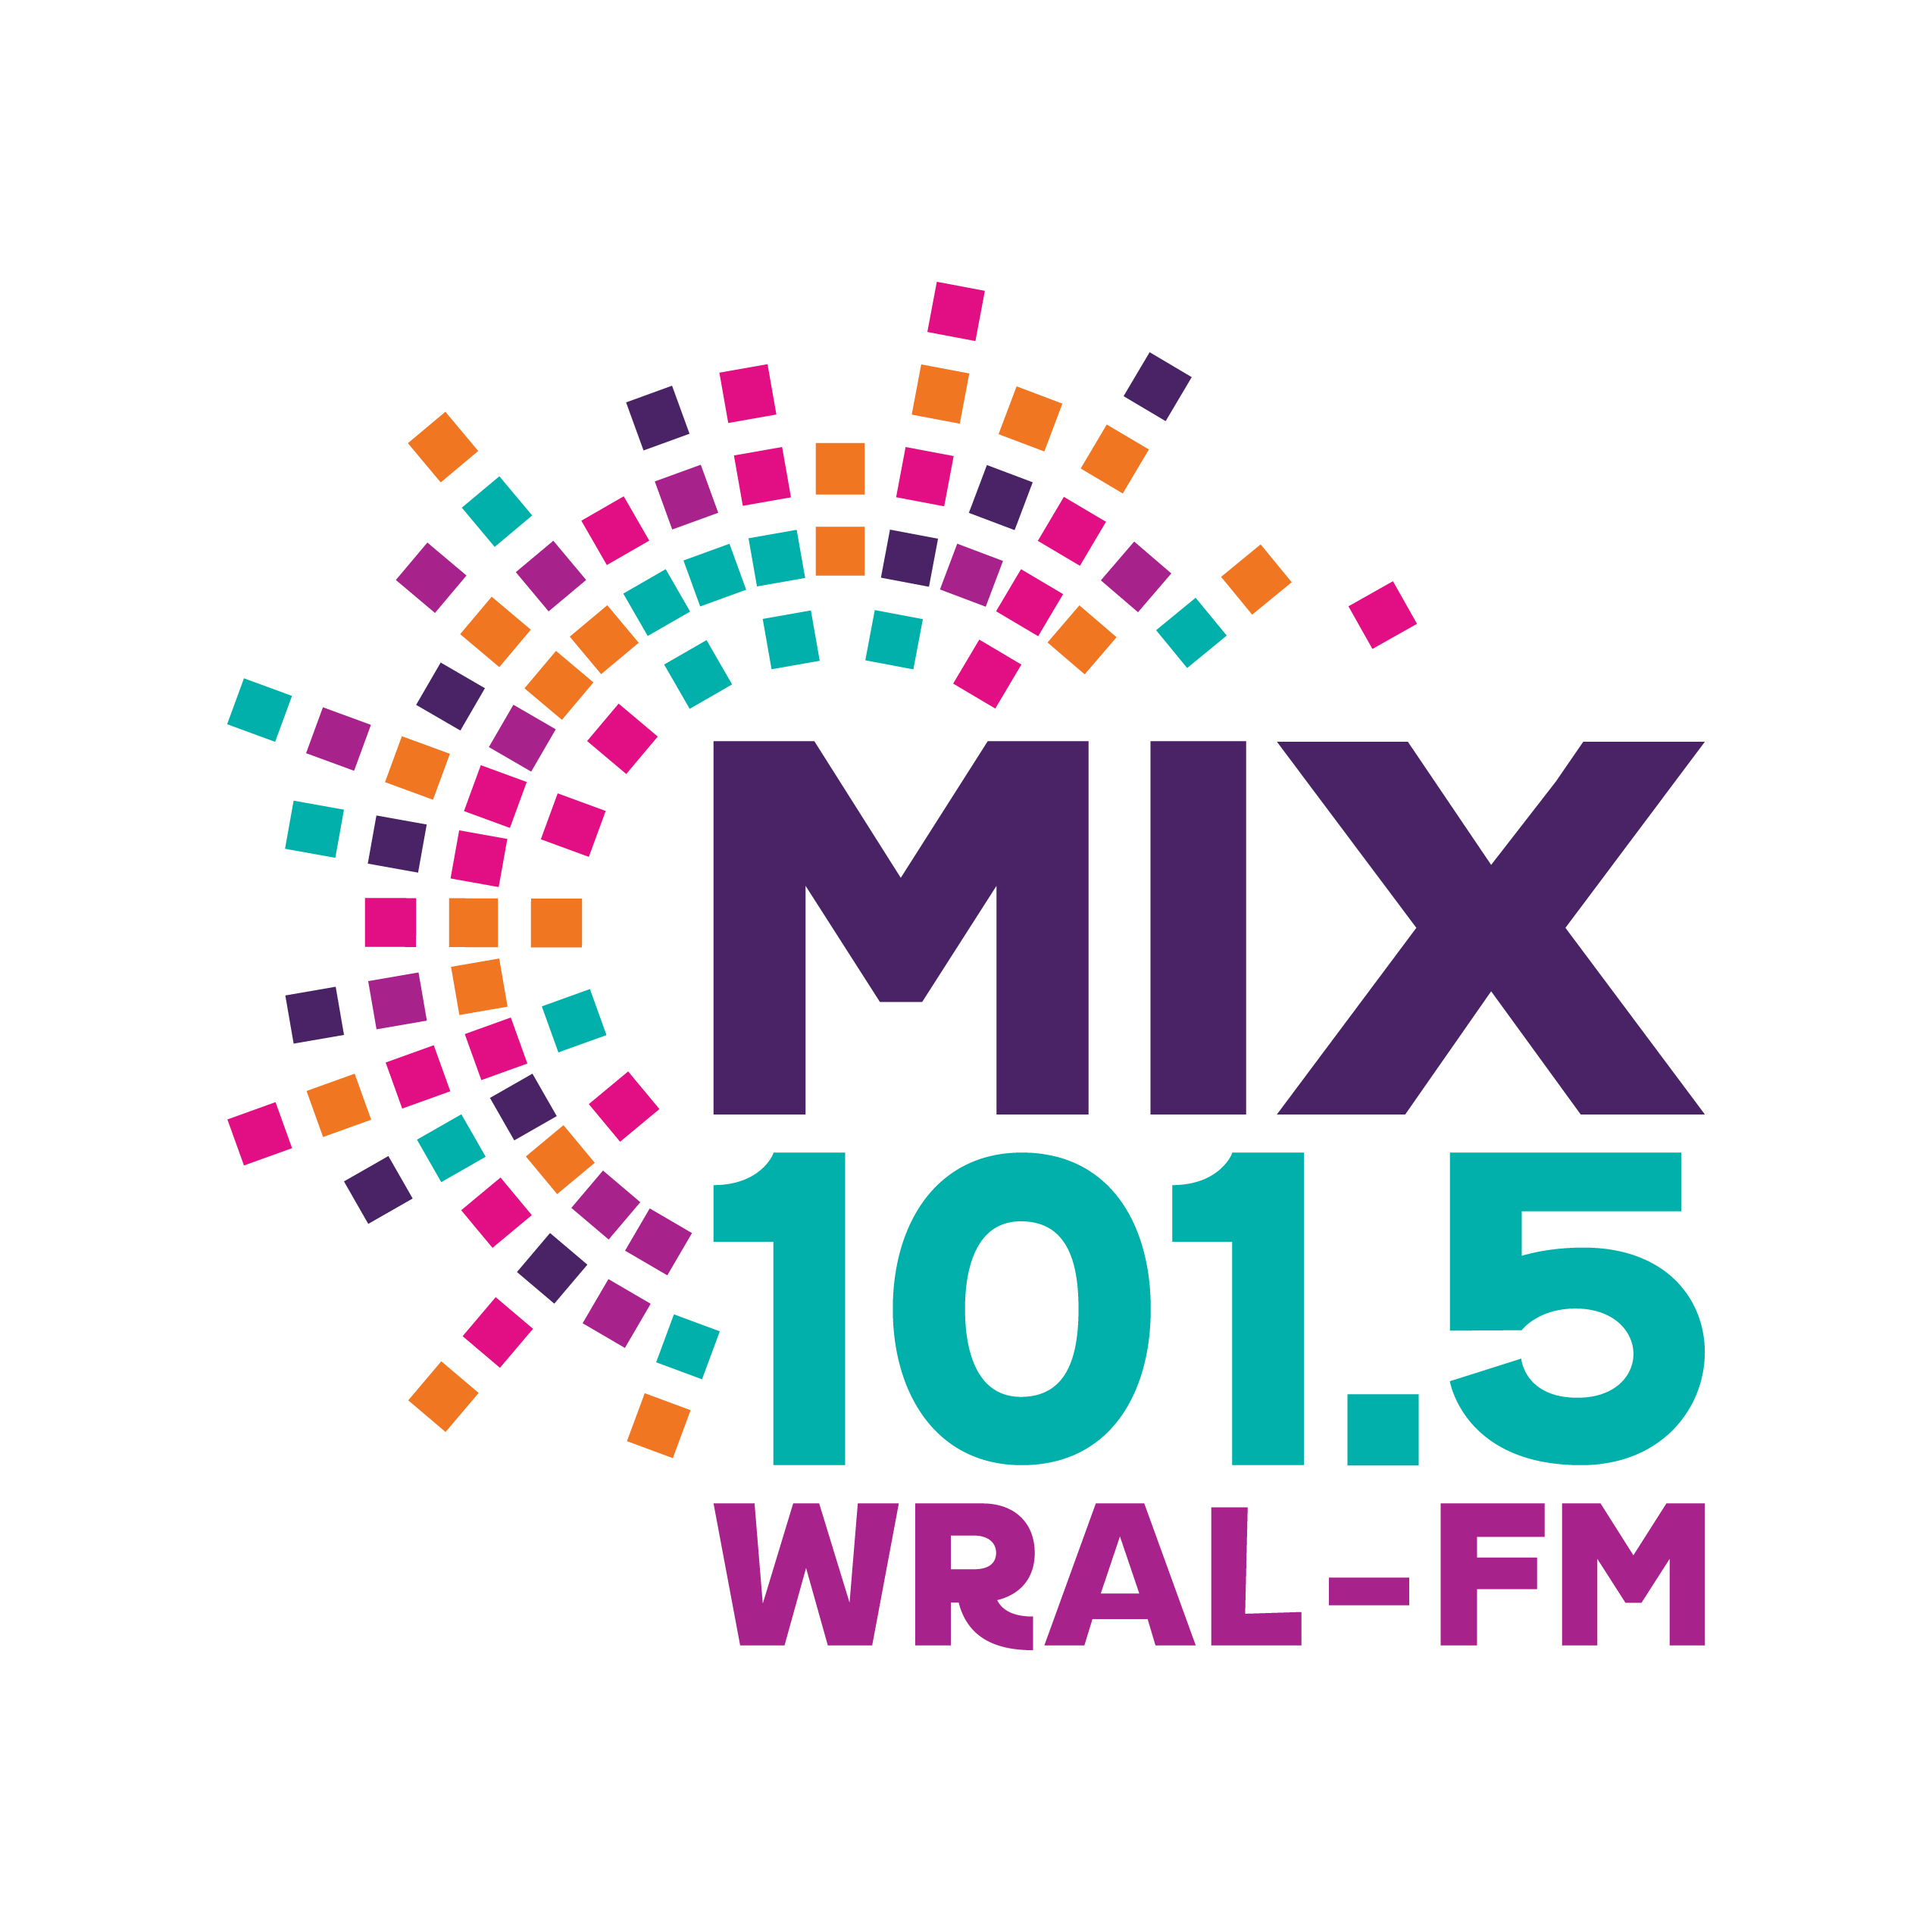 Ed Sheeran - Biography - MIX 101.5 WRAL-FM